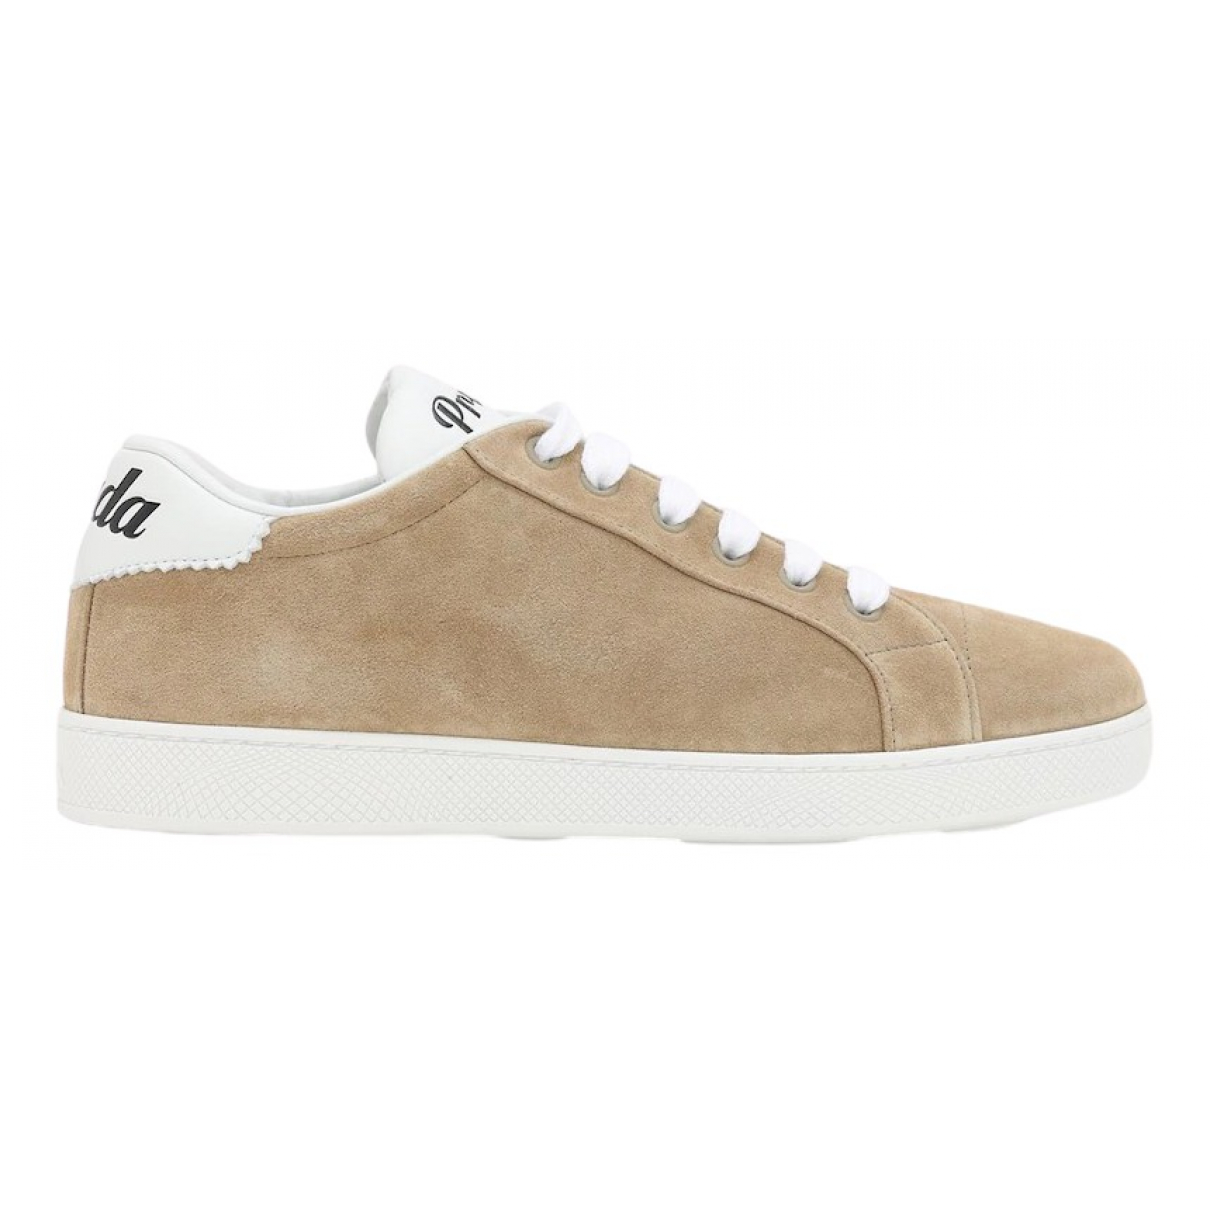 Prada \N Beige Suede Trainers for Women 38.5 EU